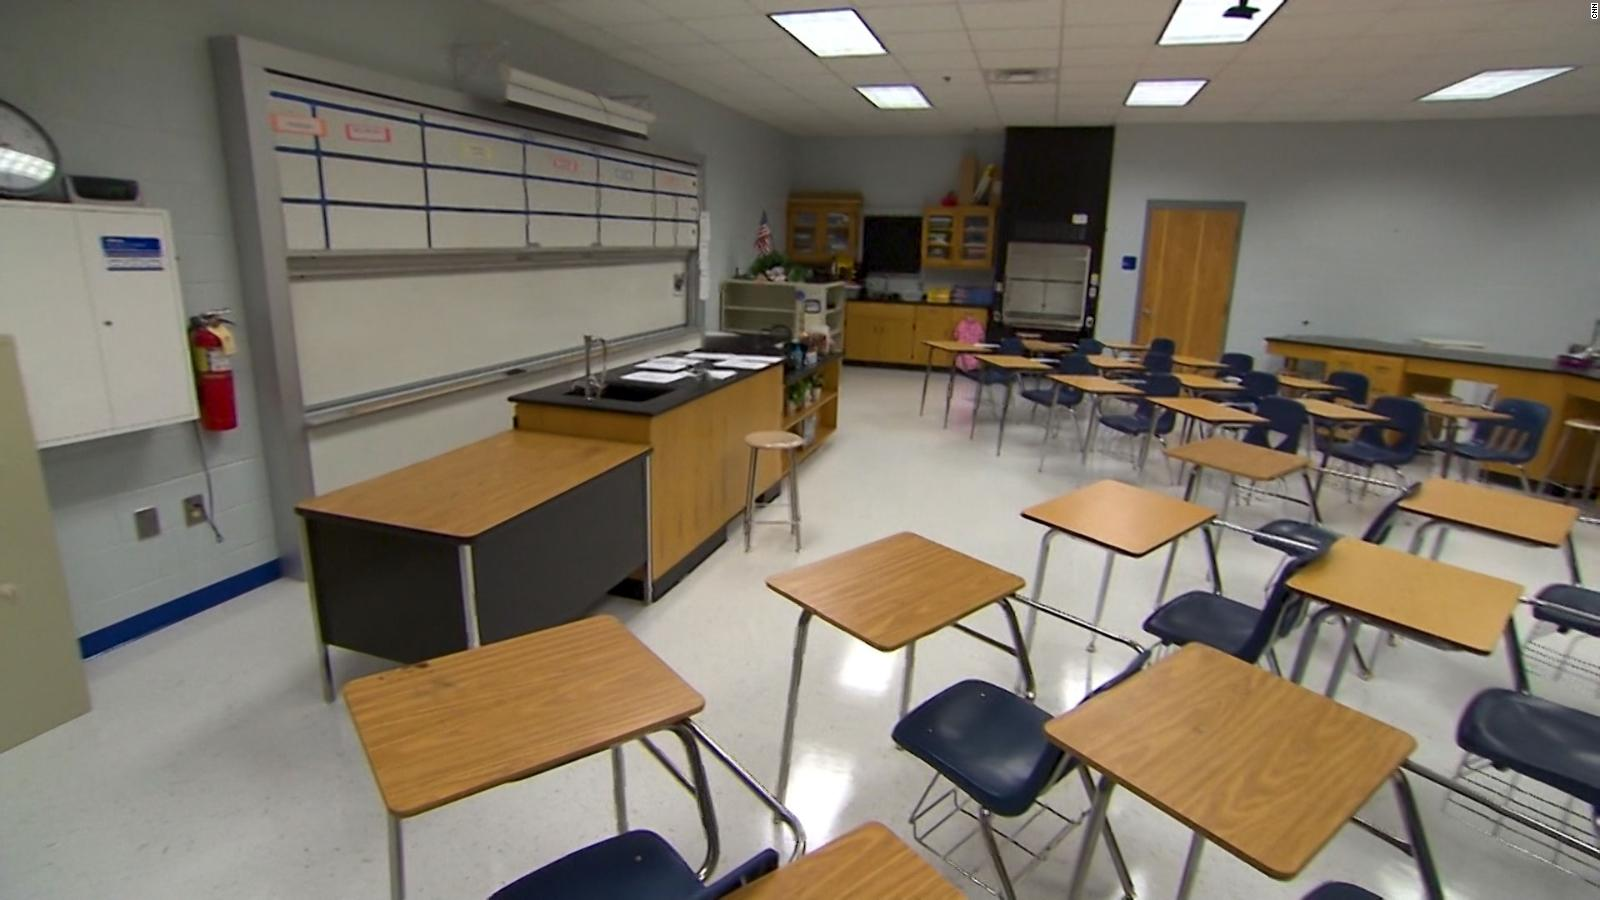 Kentucky Health, education officials to discuss reopening schools